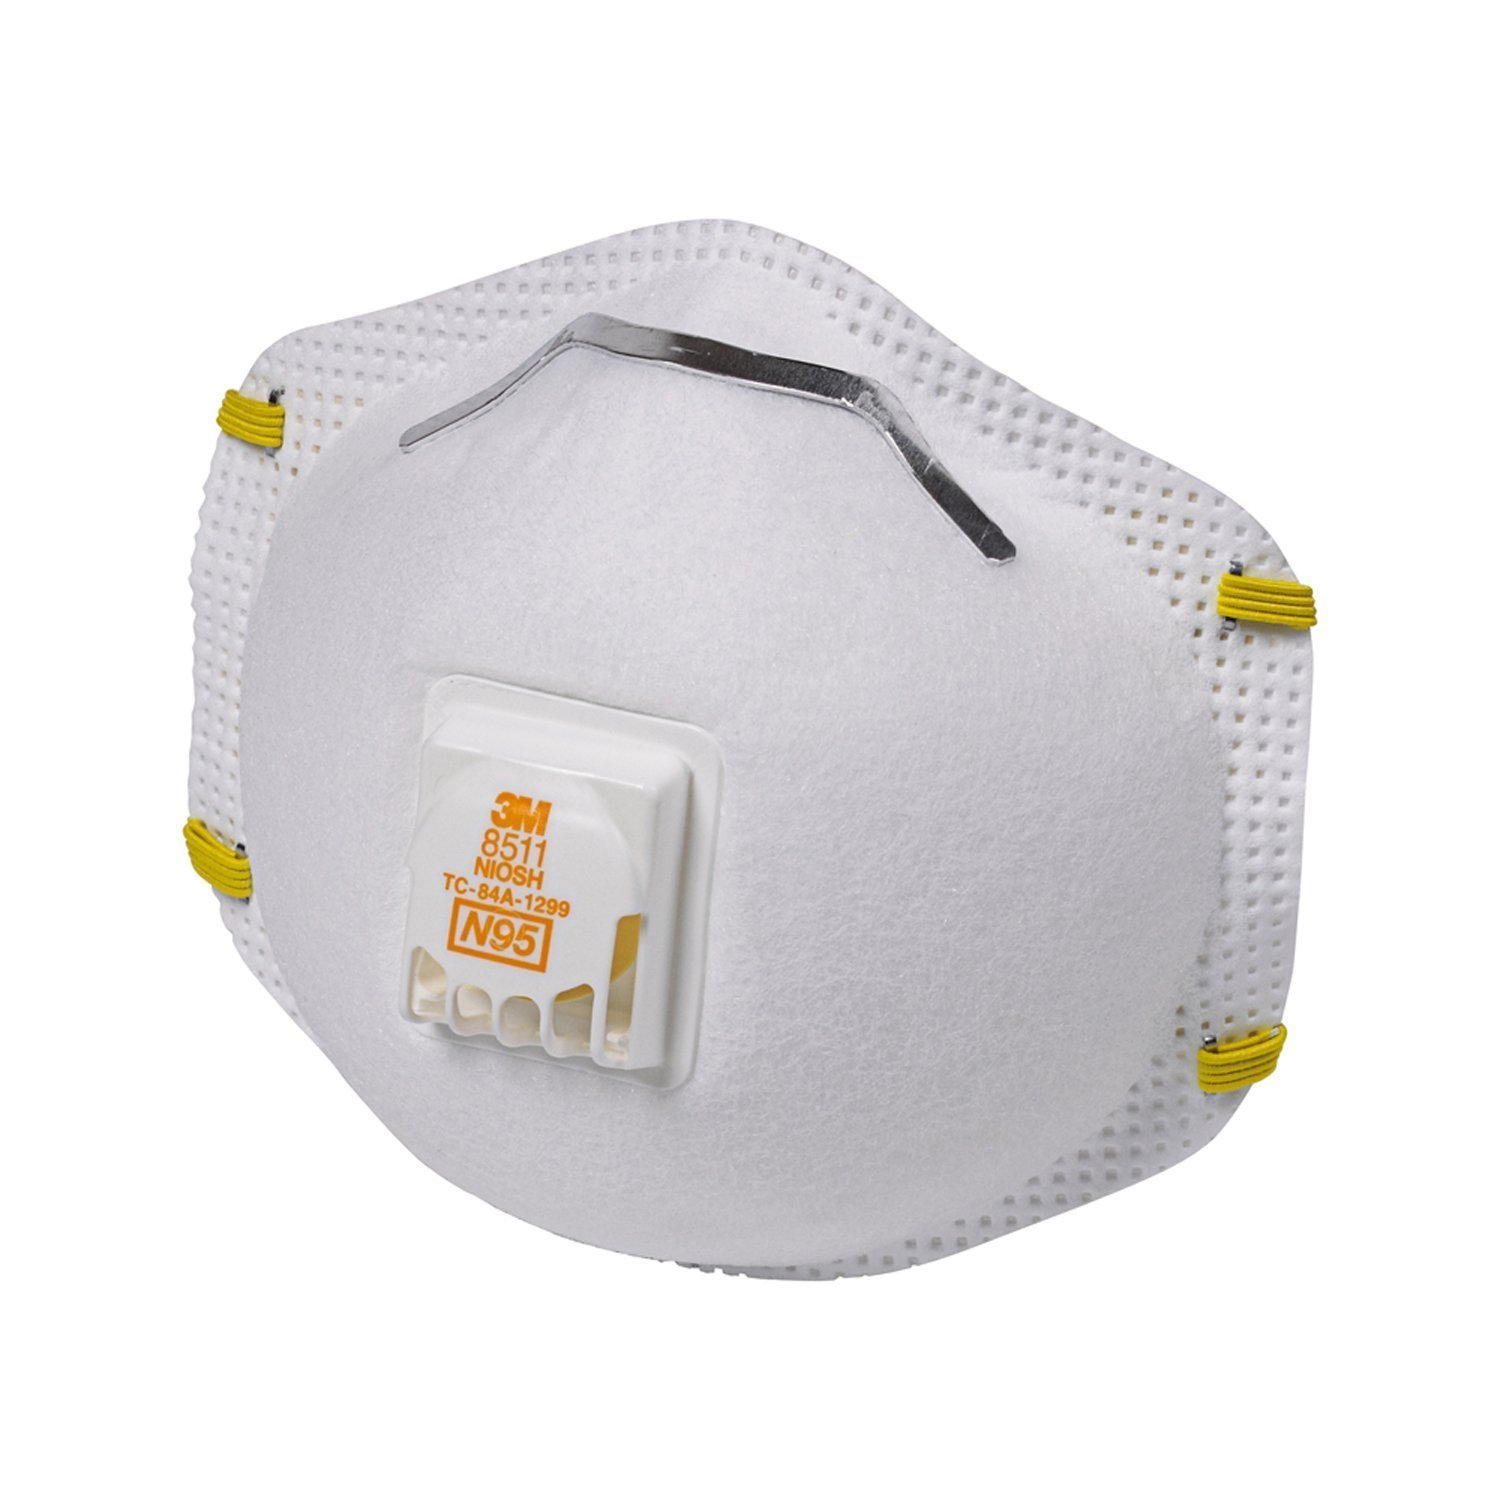 3M 8511 Particulate N95 Respirator with Valve, 40-Pack